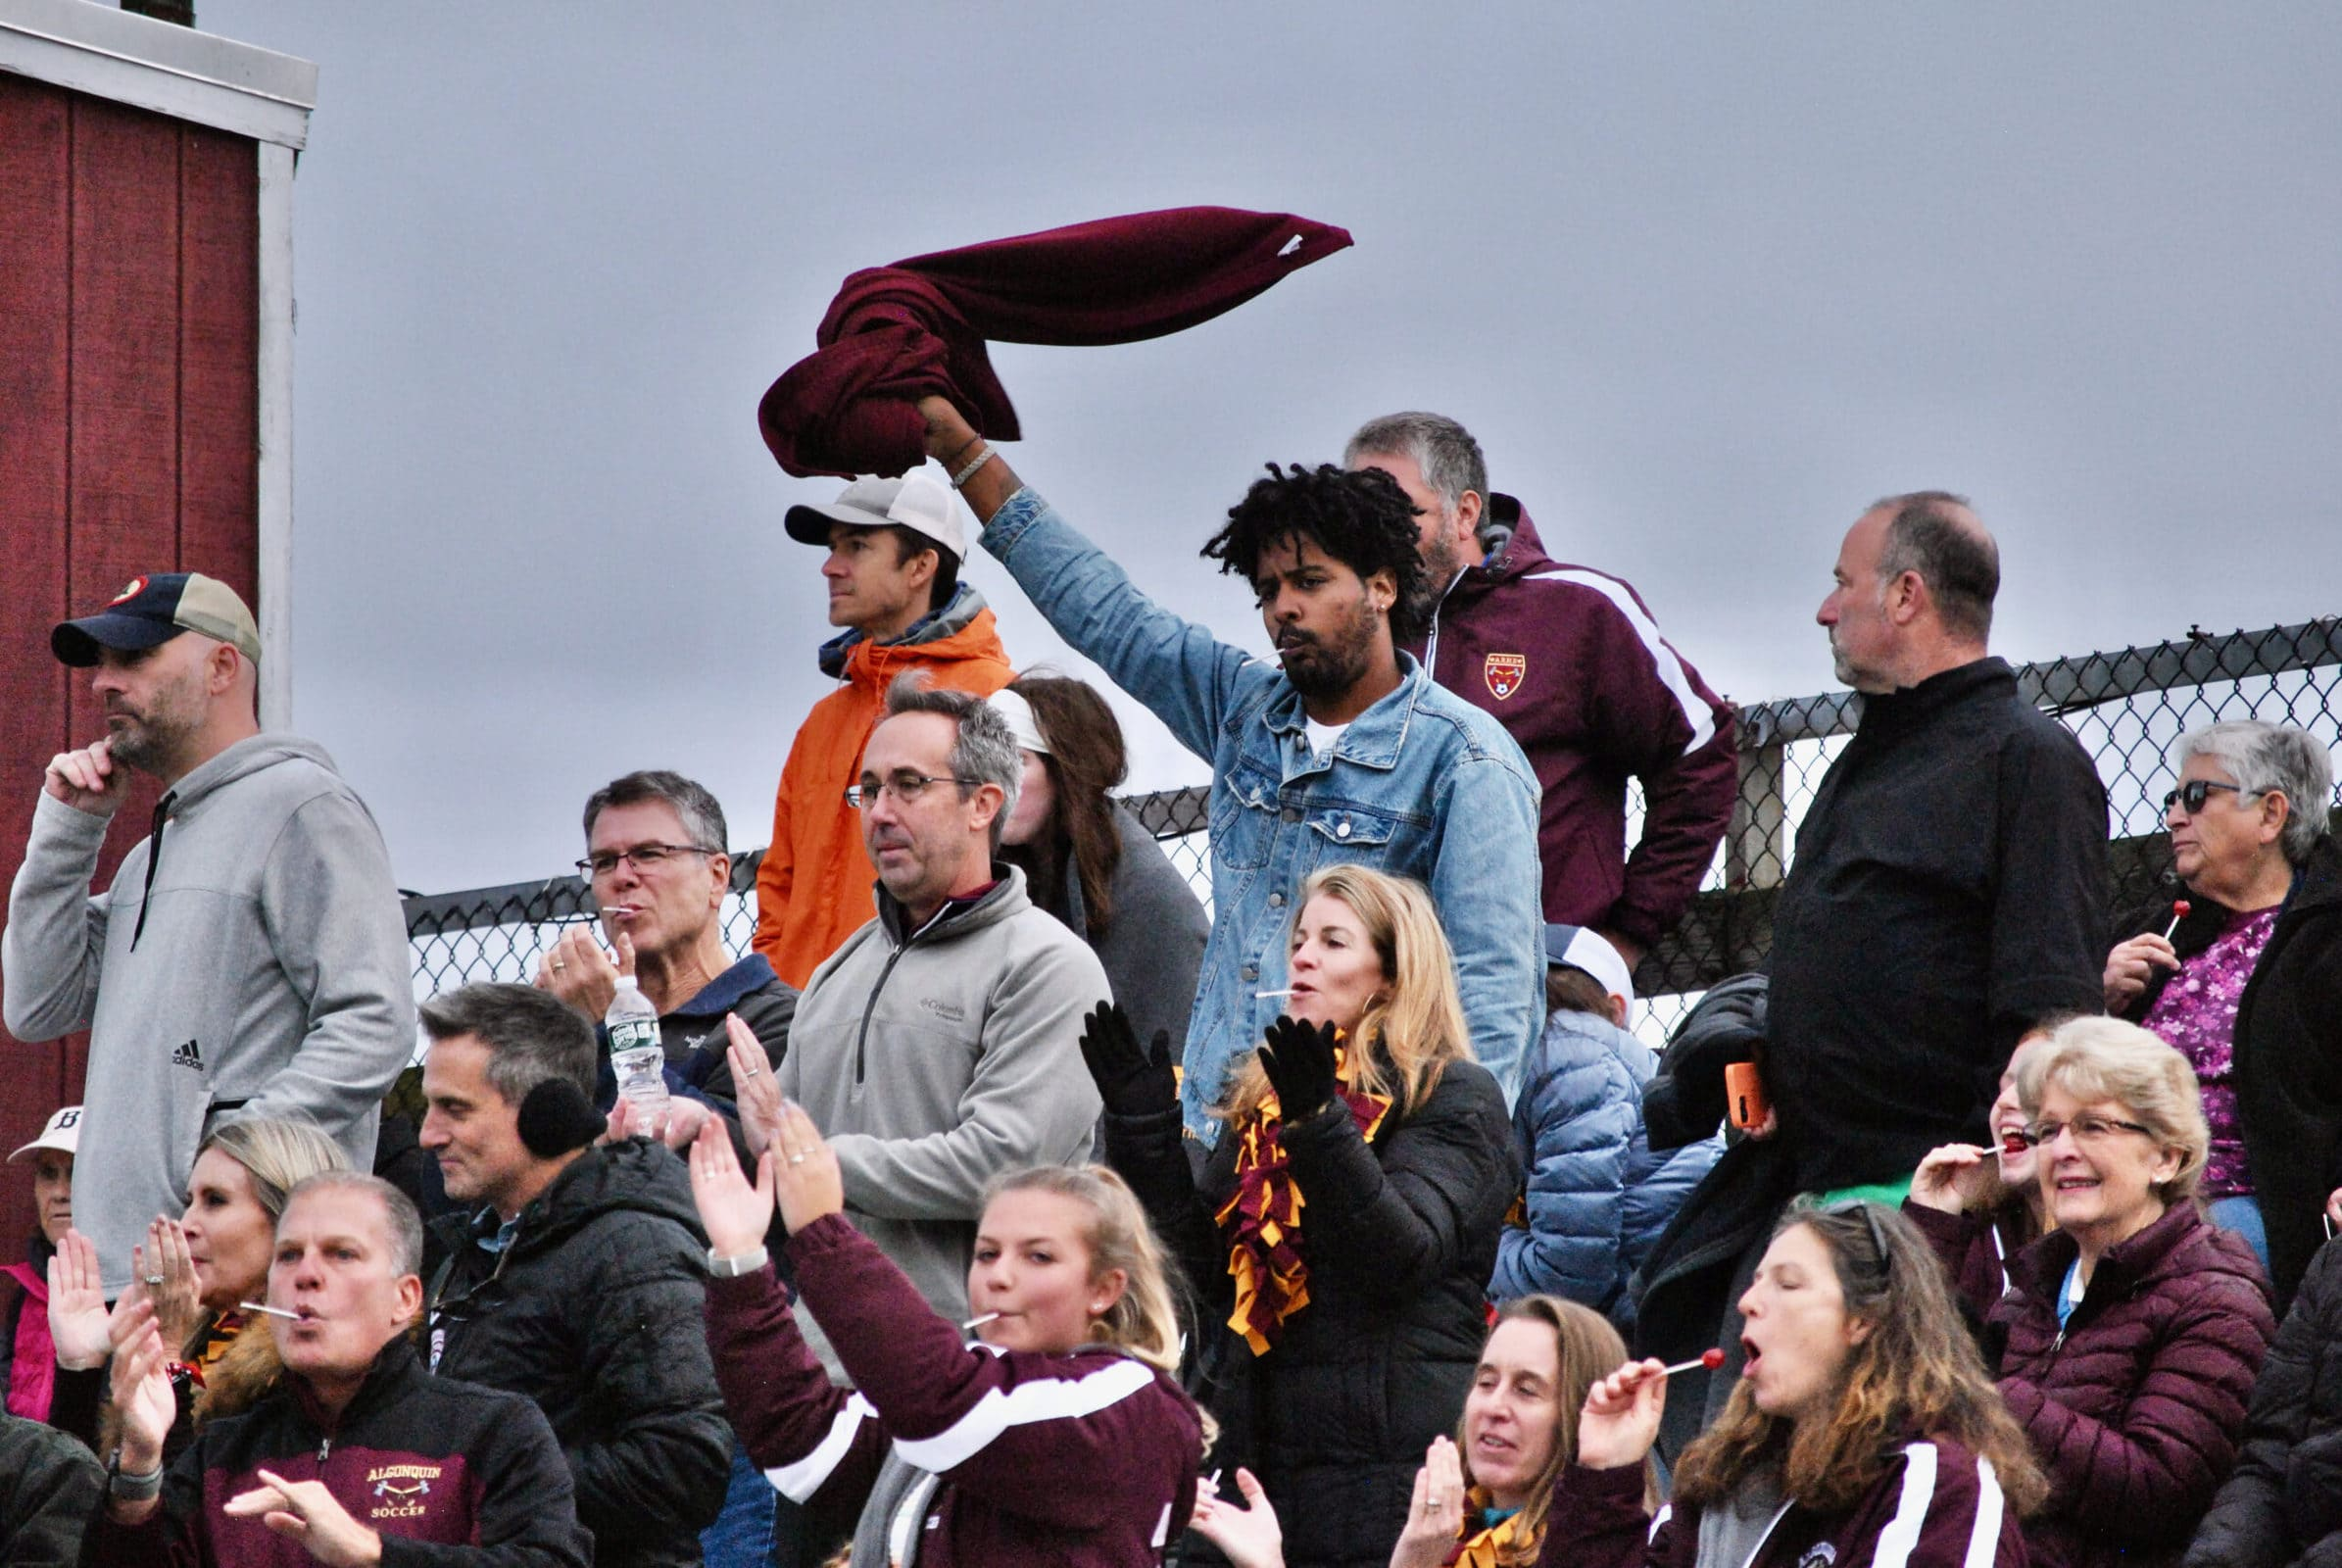 Algonquin fans celebrate a goal by their team late in their game on Oct. 9.